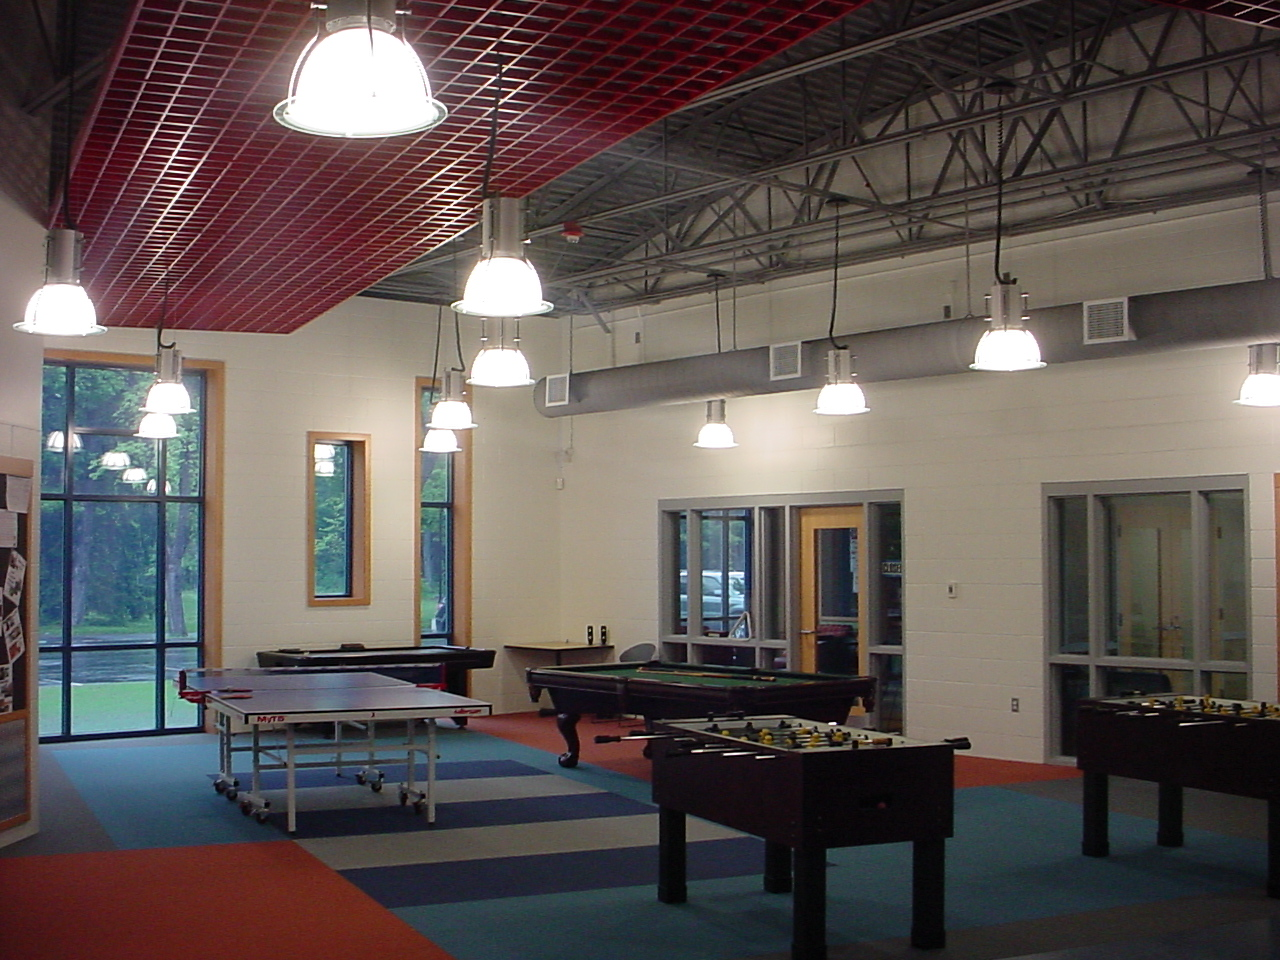 Engineering services for the renovations and additions to the Boys & Girls Club. Work included plumbing design and fixture selection, mechanical design, fire protection design, lighting, fire alarm, data and communications, and security system design and layout